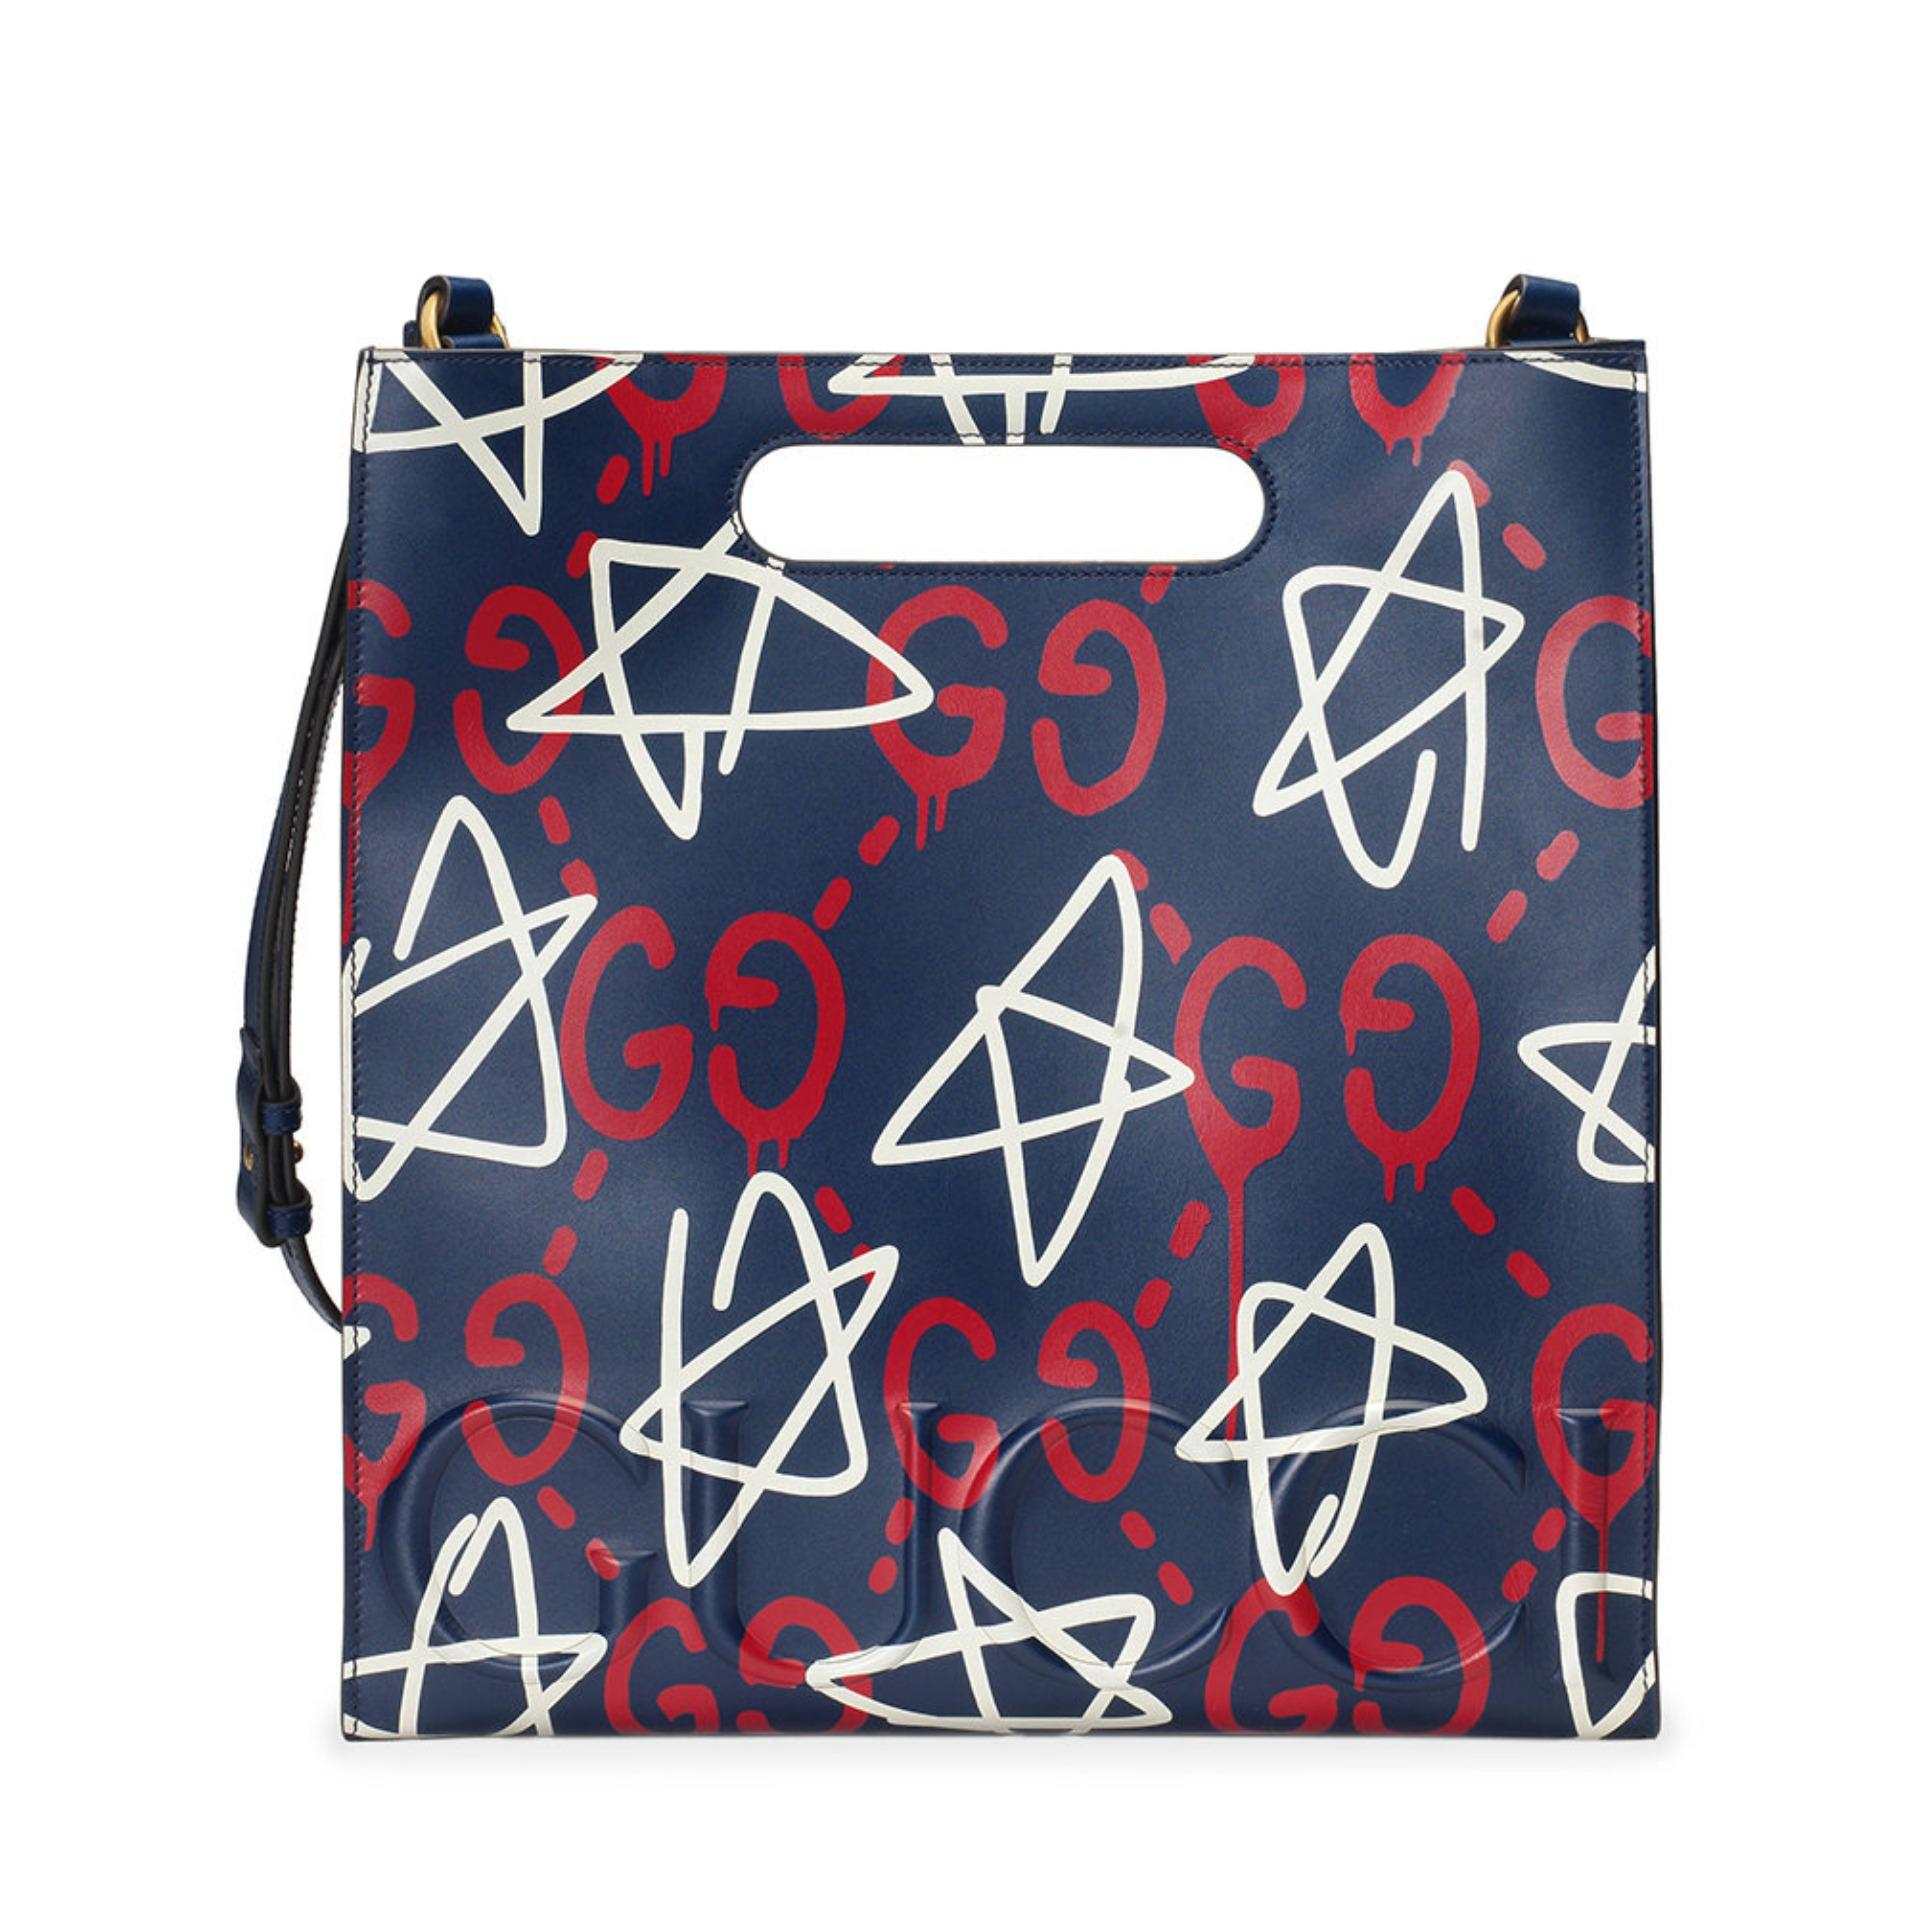 82c6239b0a3b Gucci Ghost Leather Tote Bag (Prints) # 414476DSUCT4180